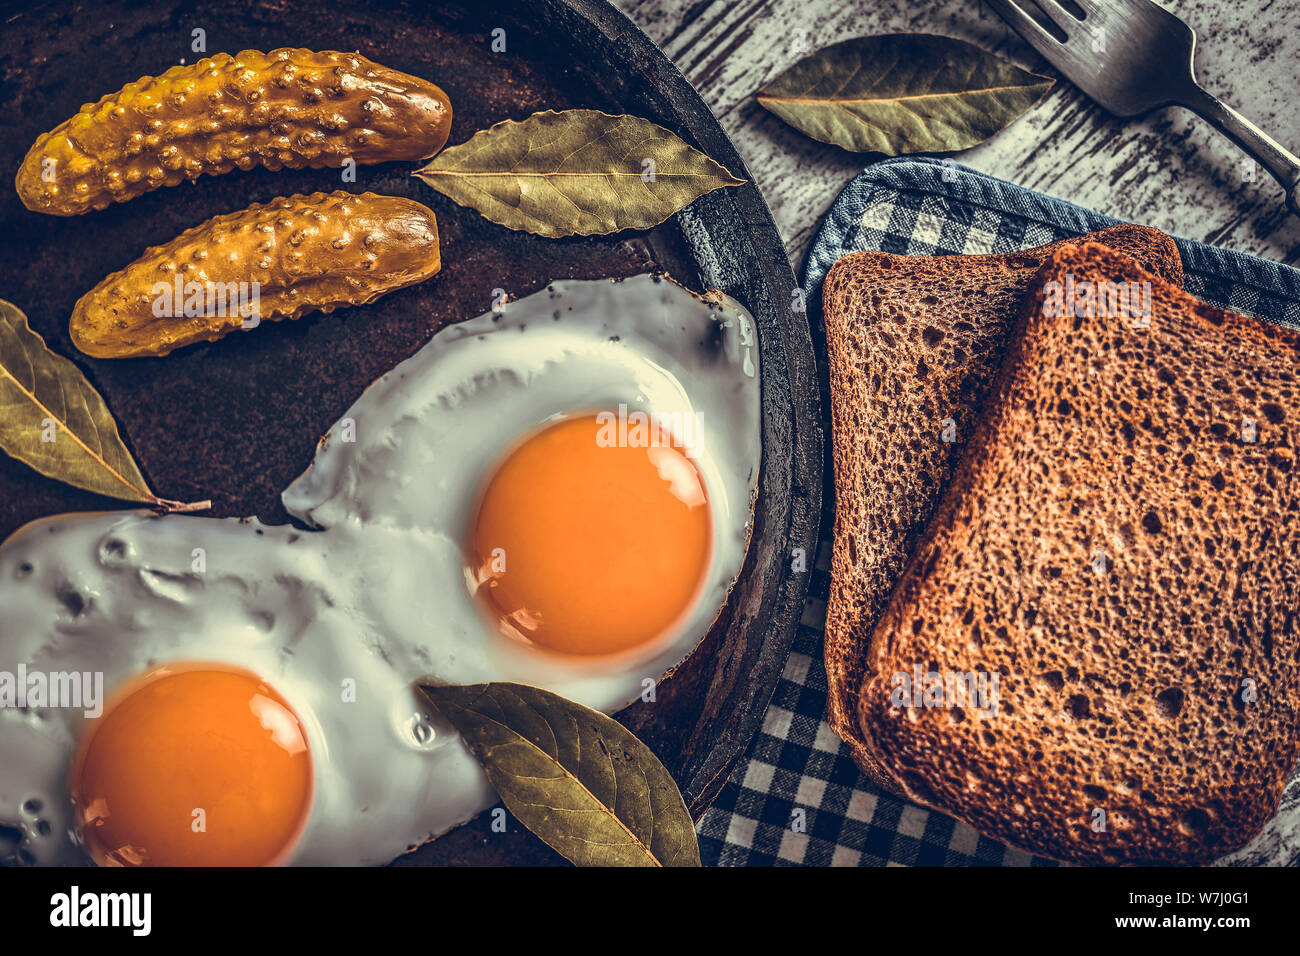 Fried eggs in a frying pan. Rye toast and pickled cucumber next to fried eggs. Stock Photo